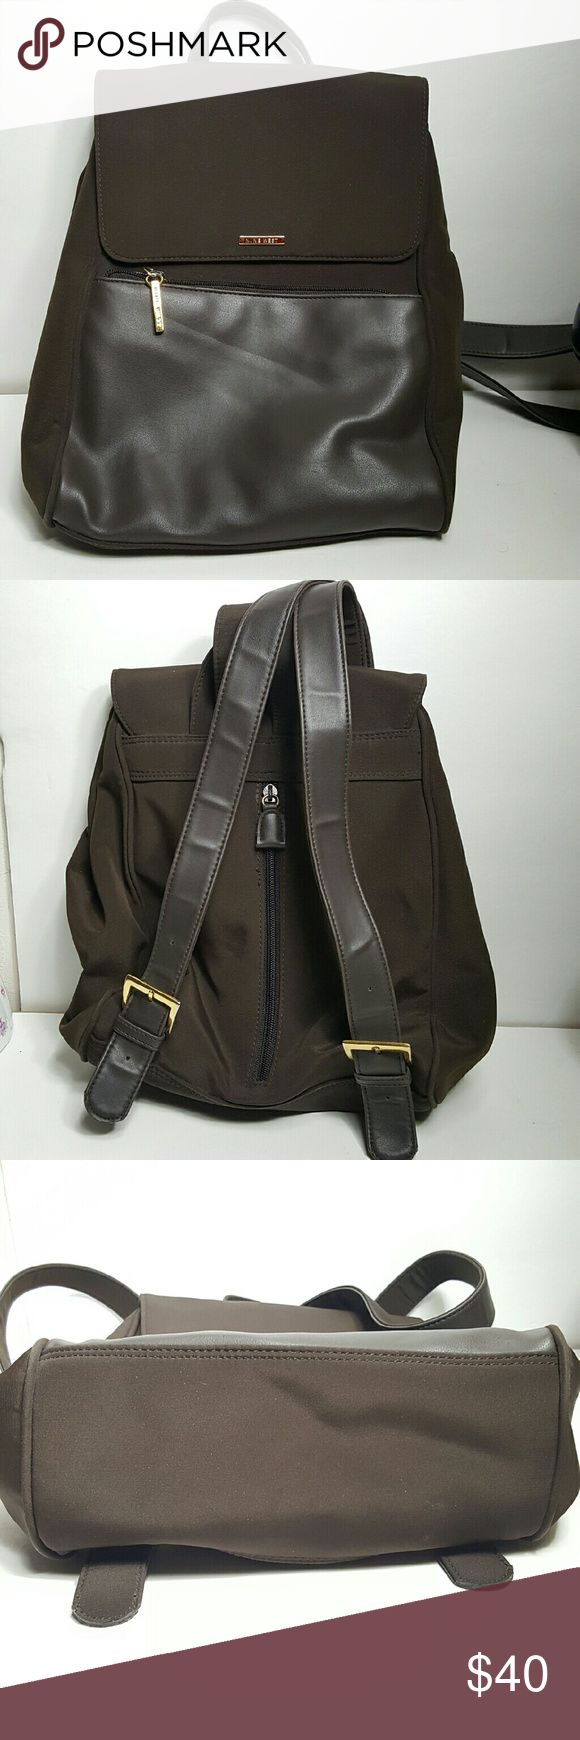 """Sleek and stylish Nine West Backpack Beautiful and Fashionable backpack brown cloth and vinyl trim.  Measures 12"""" wide 11"""" Tall approx. Nine West Bags Backpacks"""